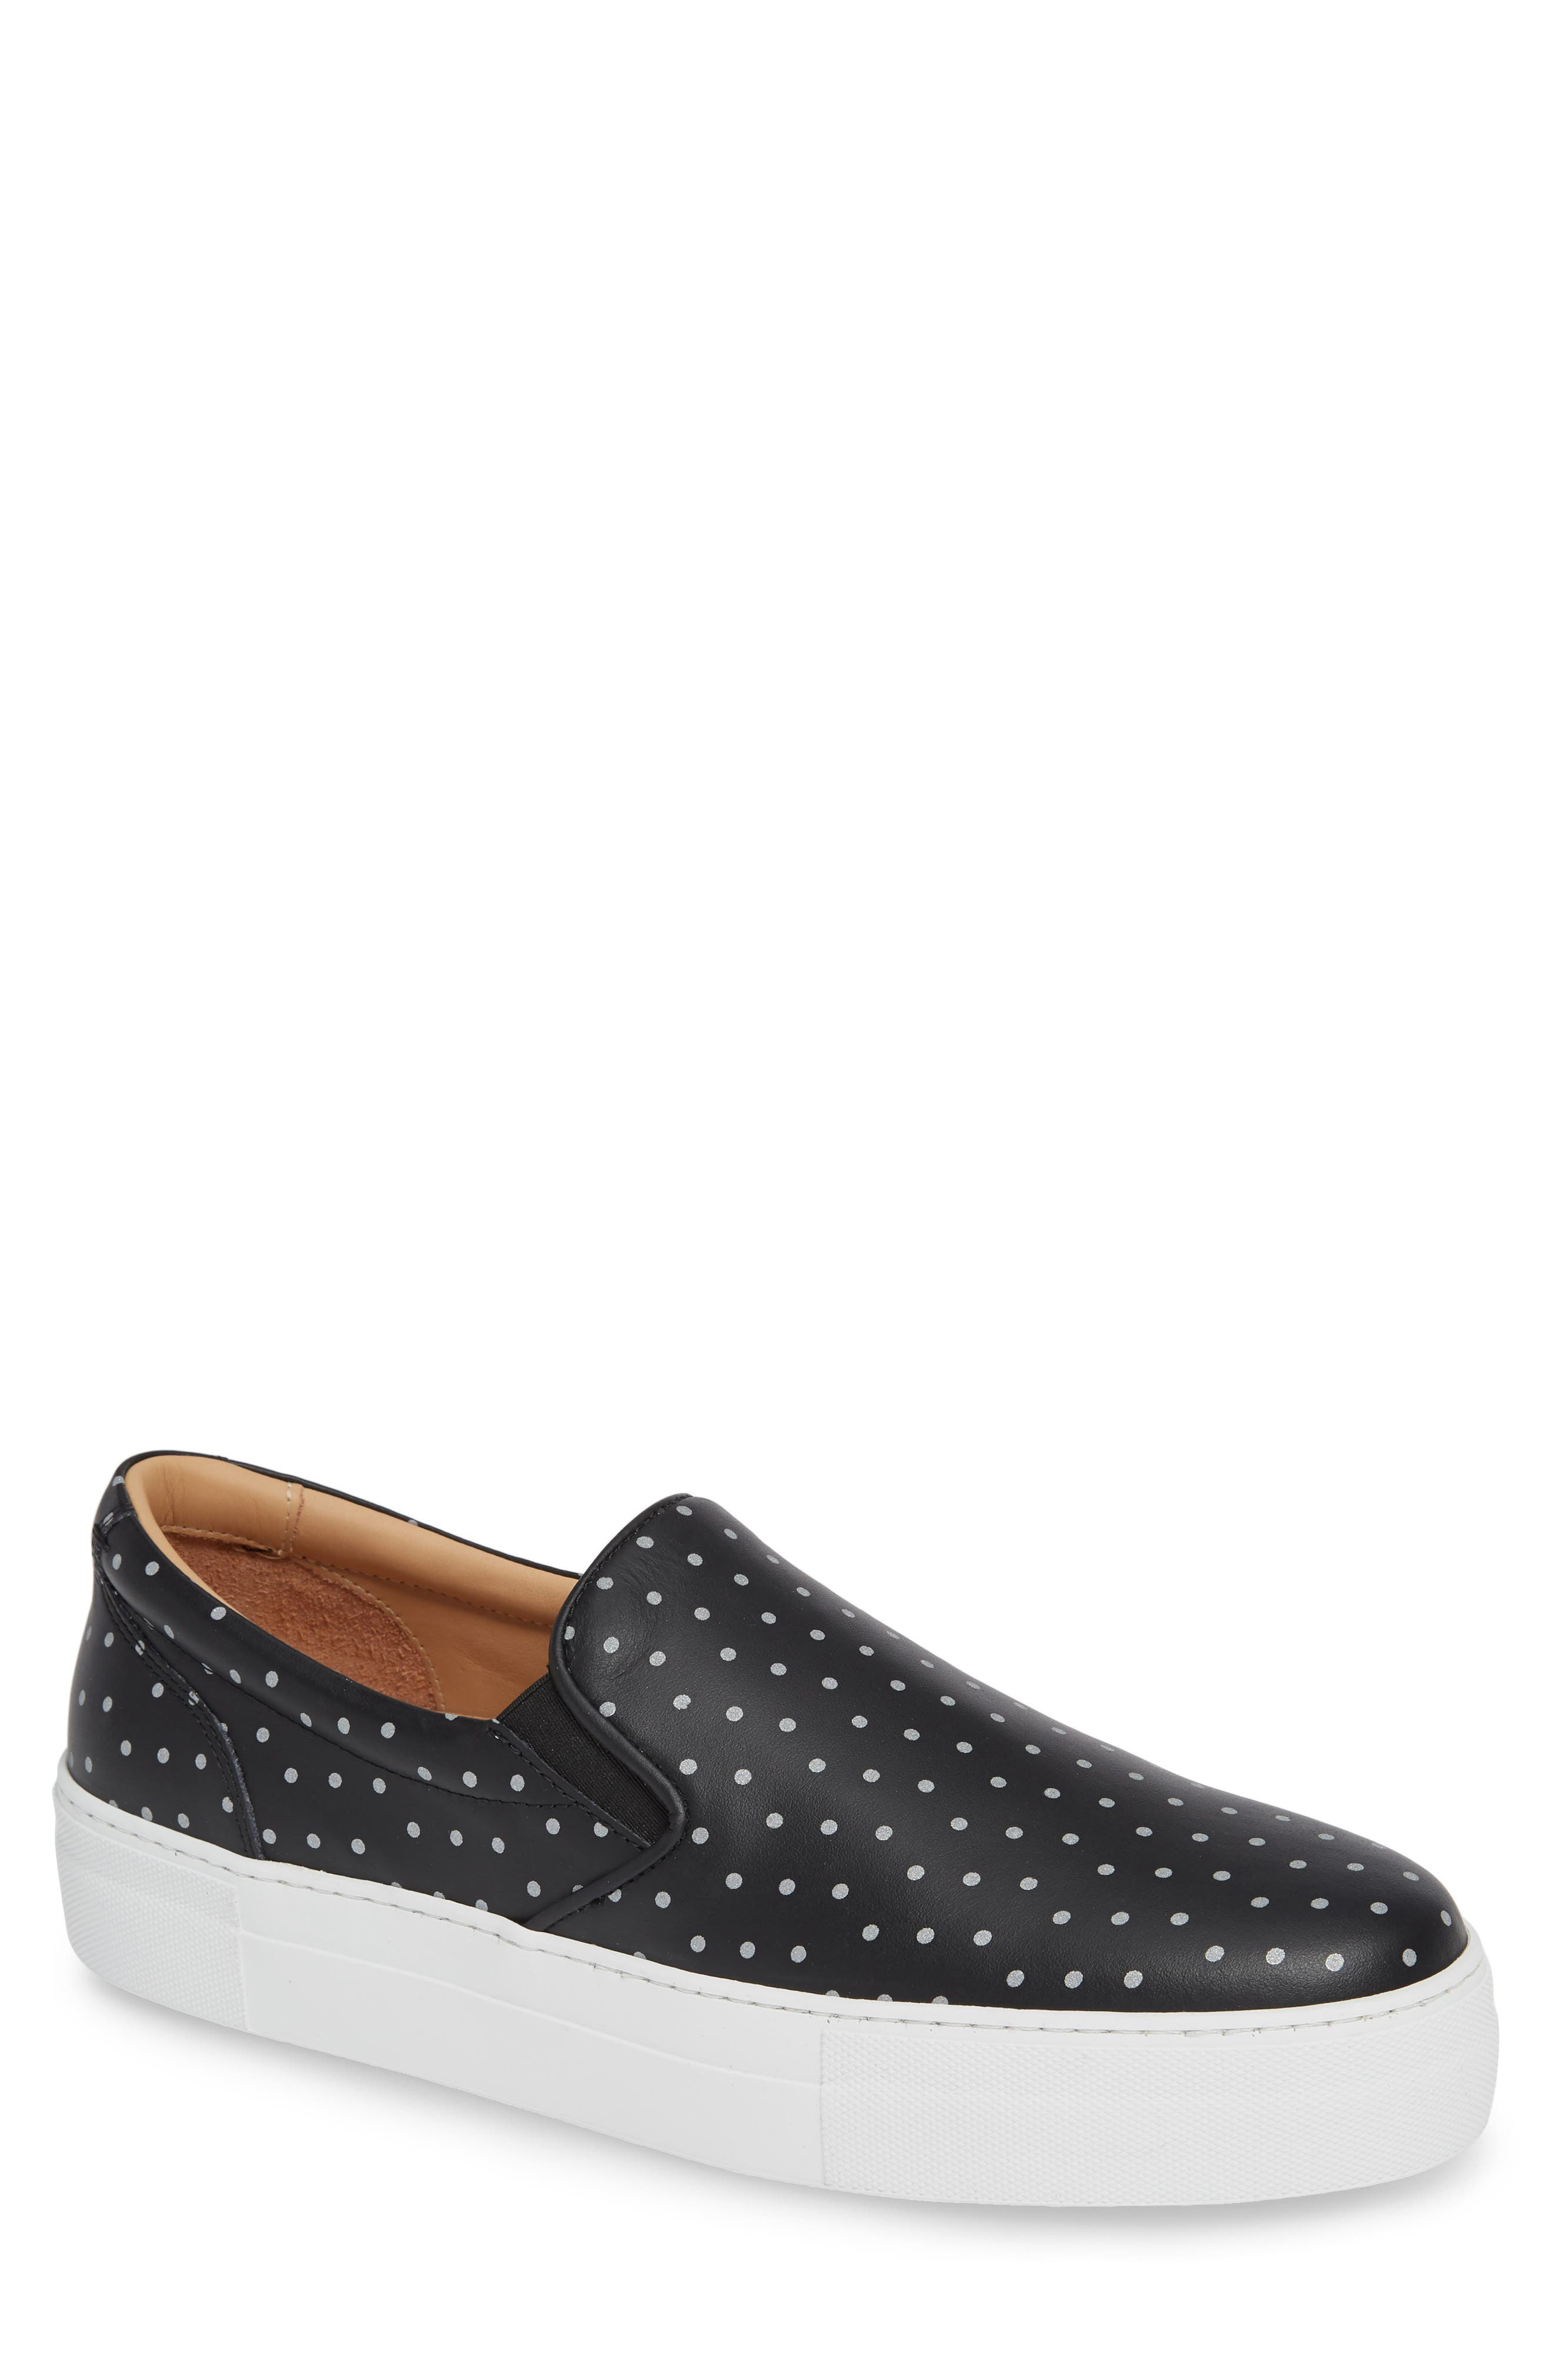 Nick Wooster x GREATS Slip-On Sneaker,                             Main thumbnail 1, color,                             BLACK W/ 3M DOTS